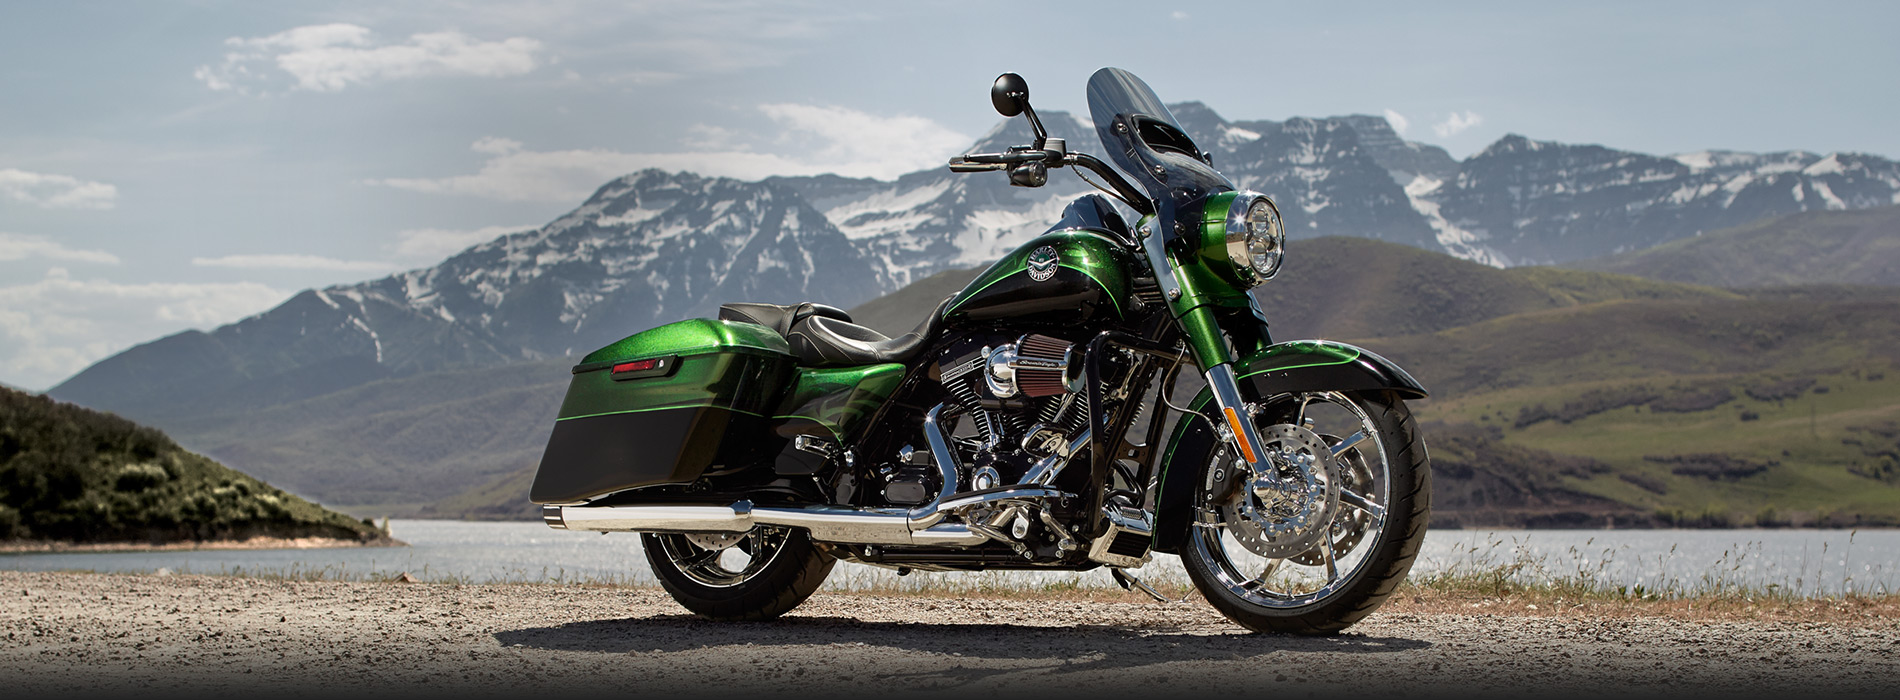 Harley-Davidson CVO Road King 2014 #1